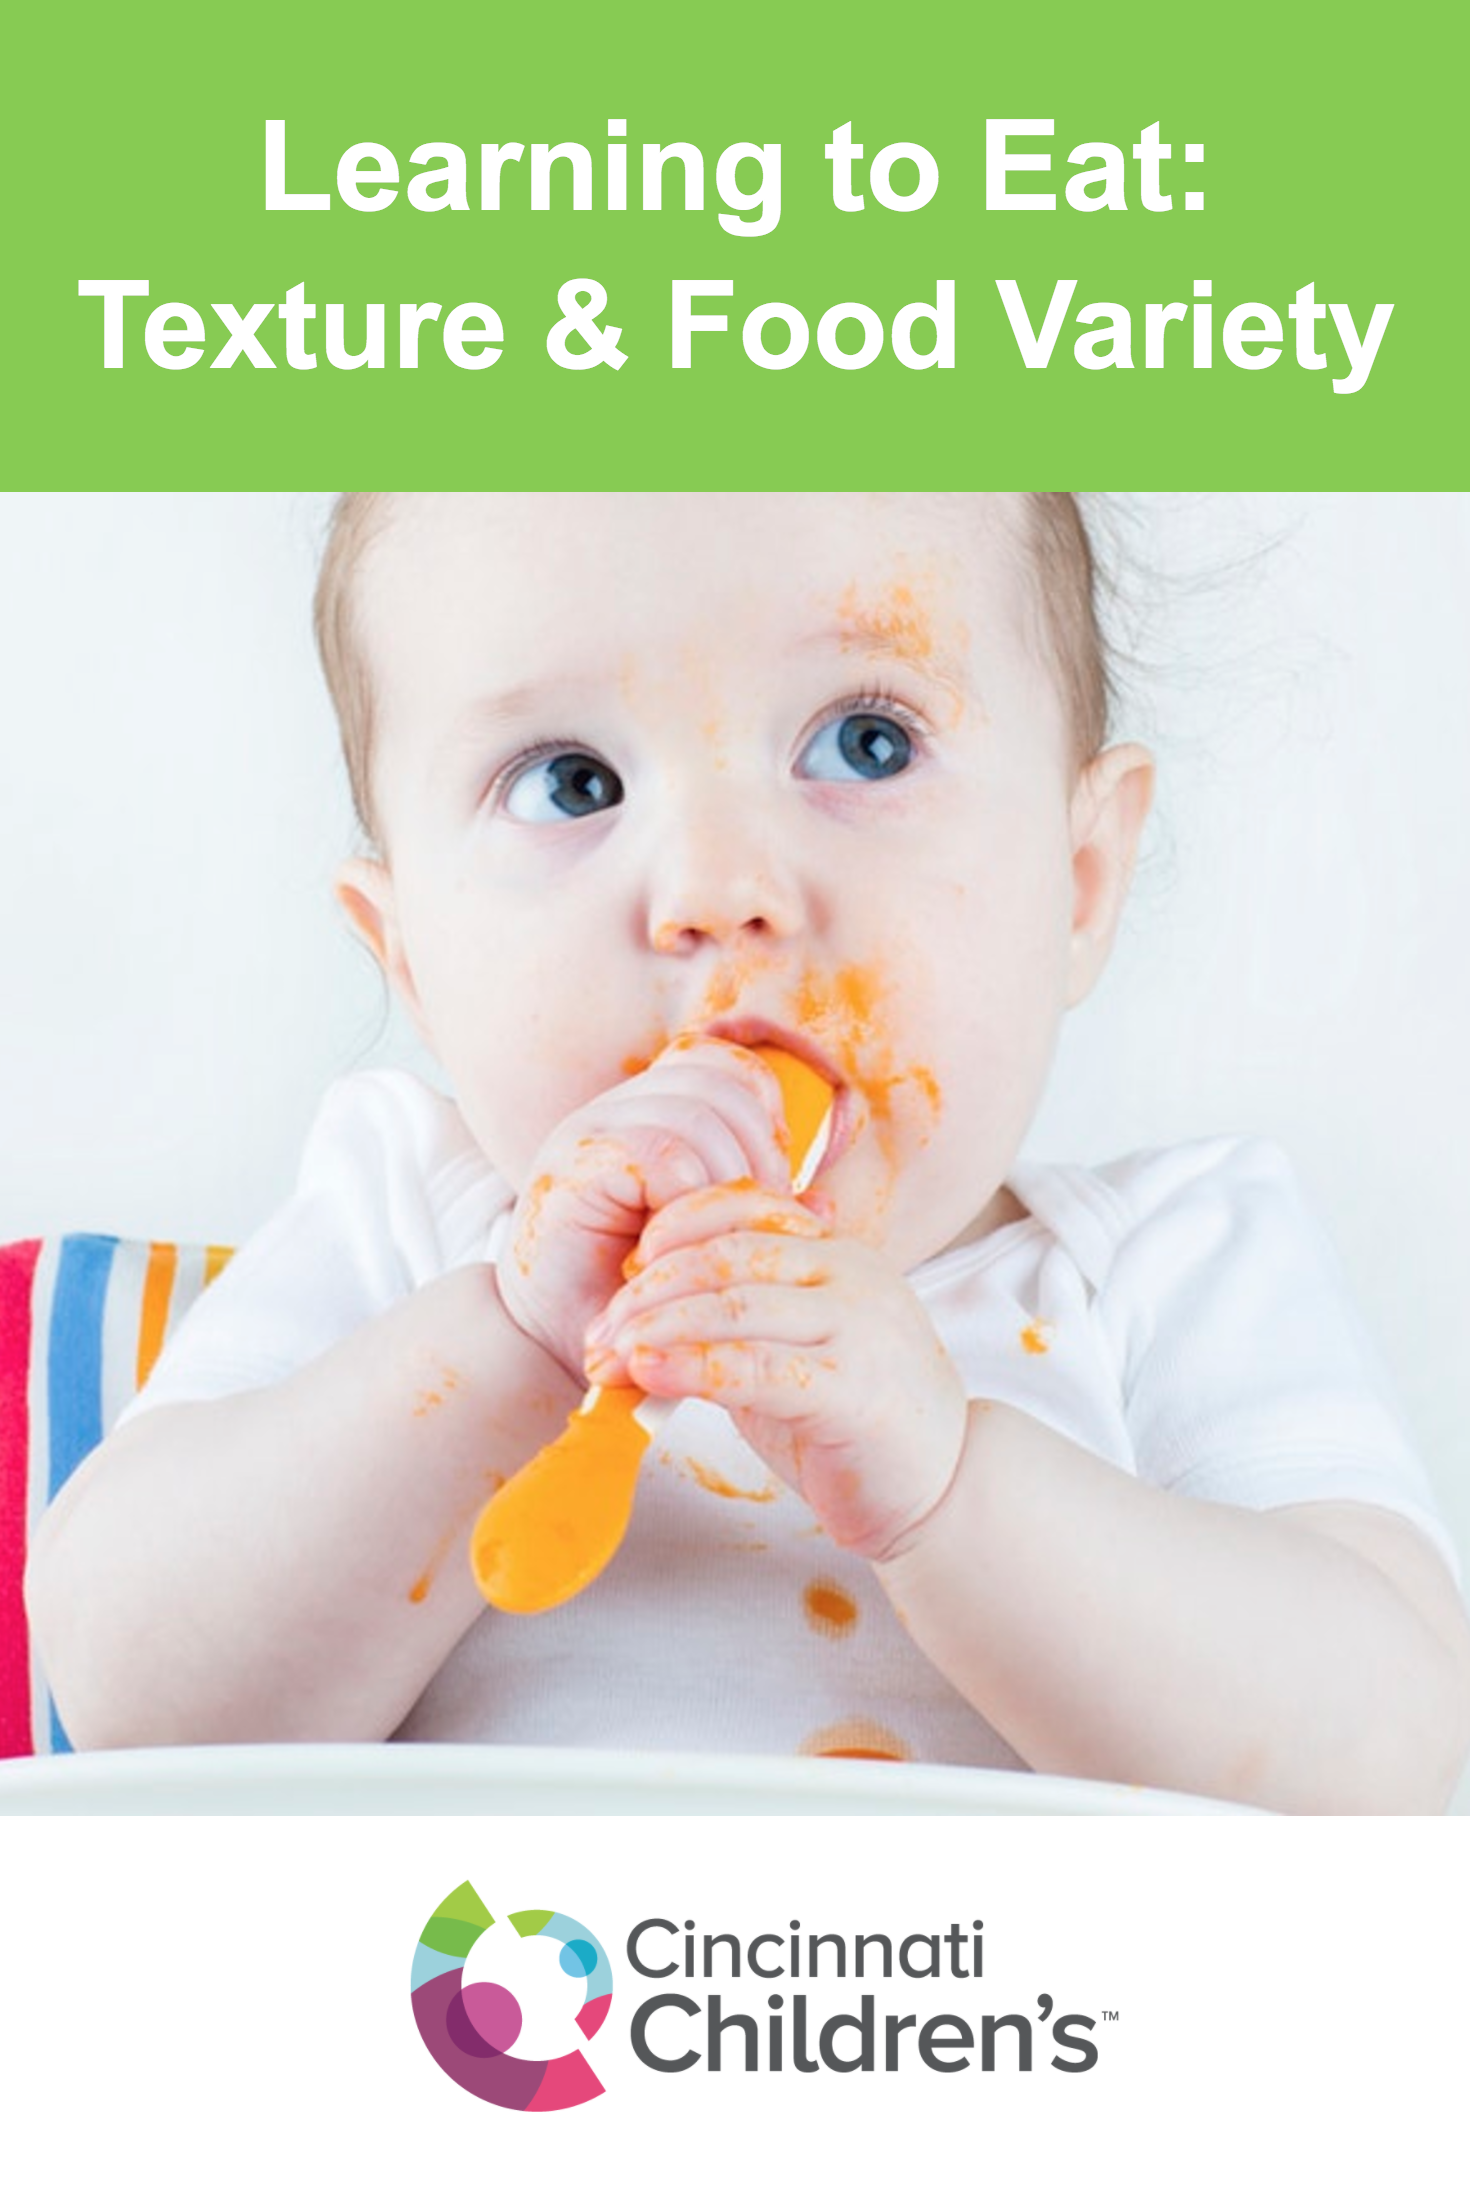 Learning To Eat The Importance Of Texture And Food Variety Cincinnati Children S Blog Kids Health Cincinnati Children S Childrens Health